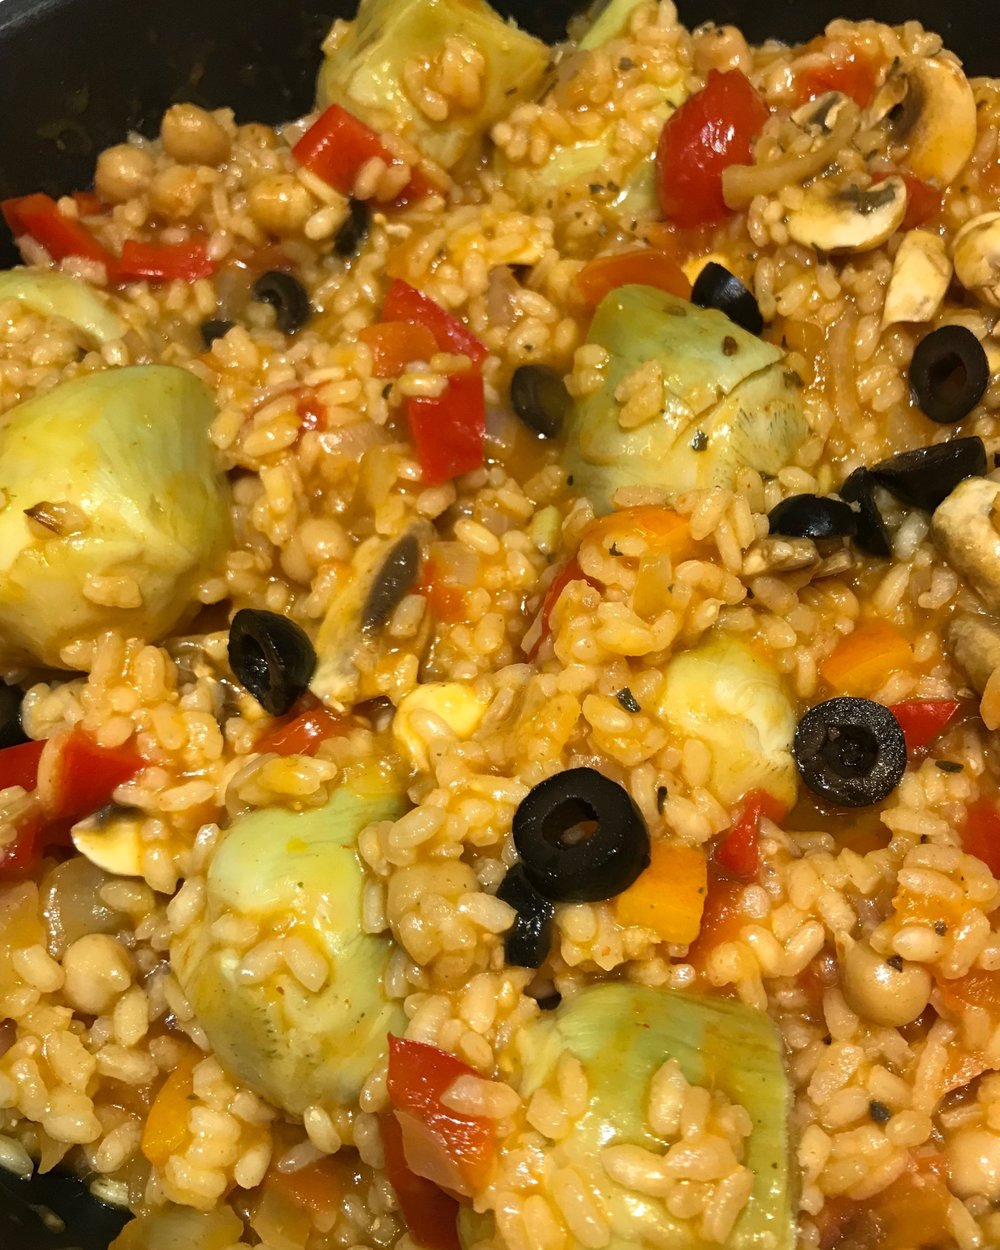 - A staple everyday recipe for home cooked paella, plant-based style.